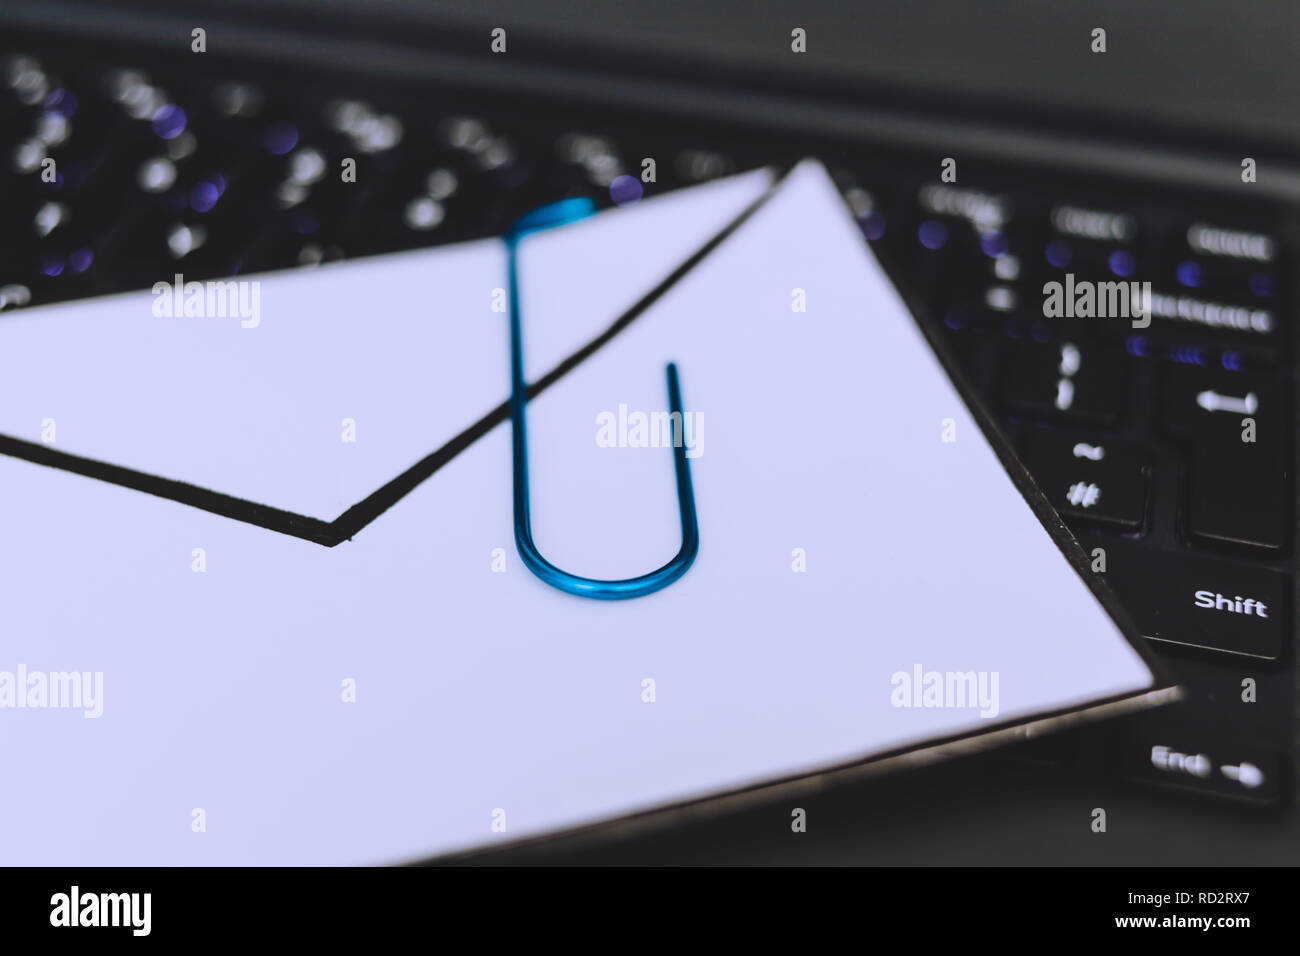 laptop keyboard with envelope and clip symbol of email attachments, close-up shot at shallow depth of field - Stock Image